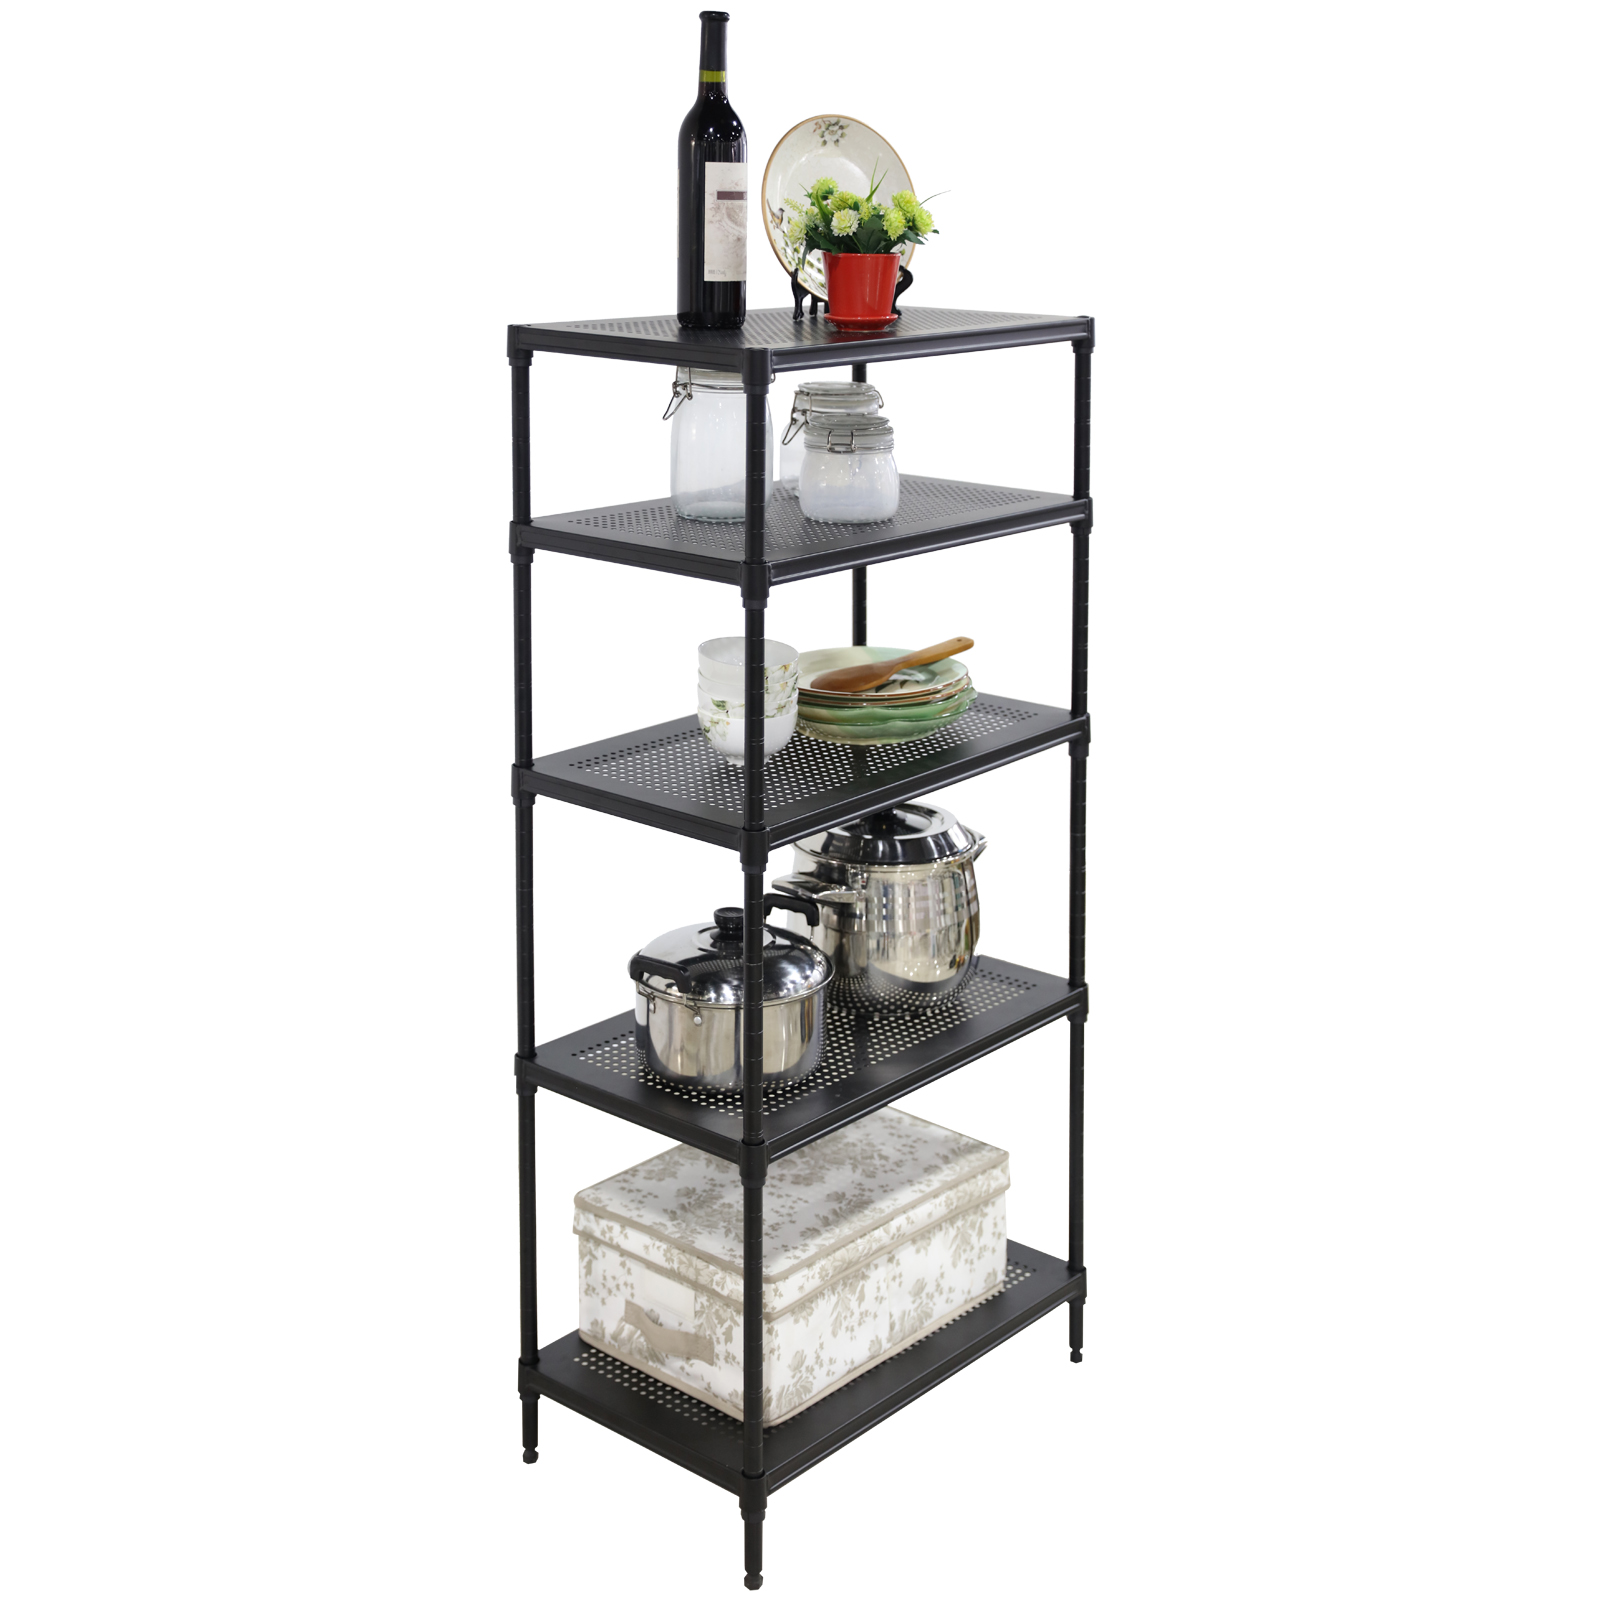 24x14x48 steel shelf storage adjustable 5 tier wire. Black Bedroom Furniture Sets. Home Design Ideas